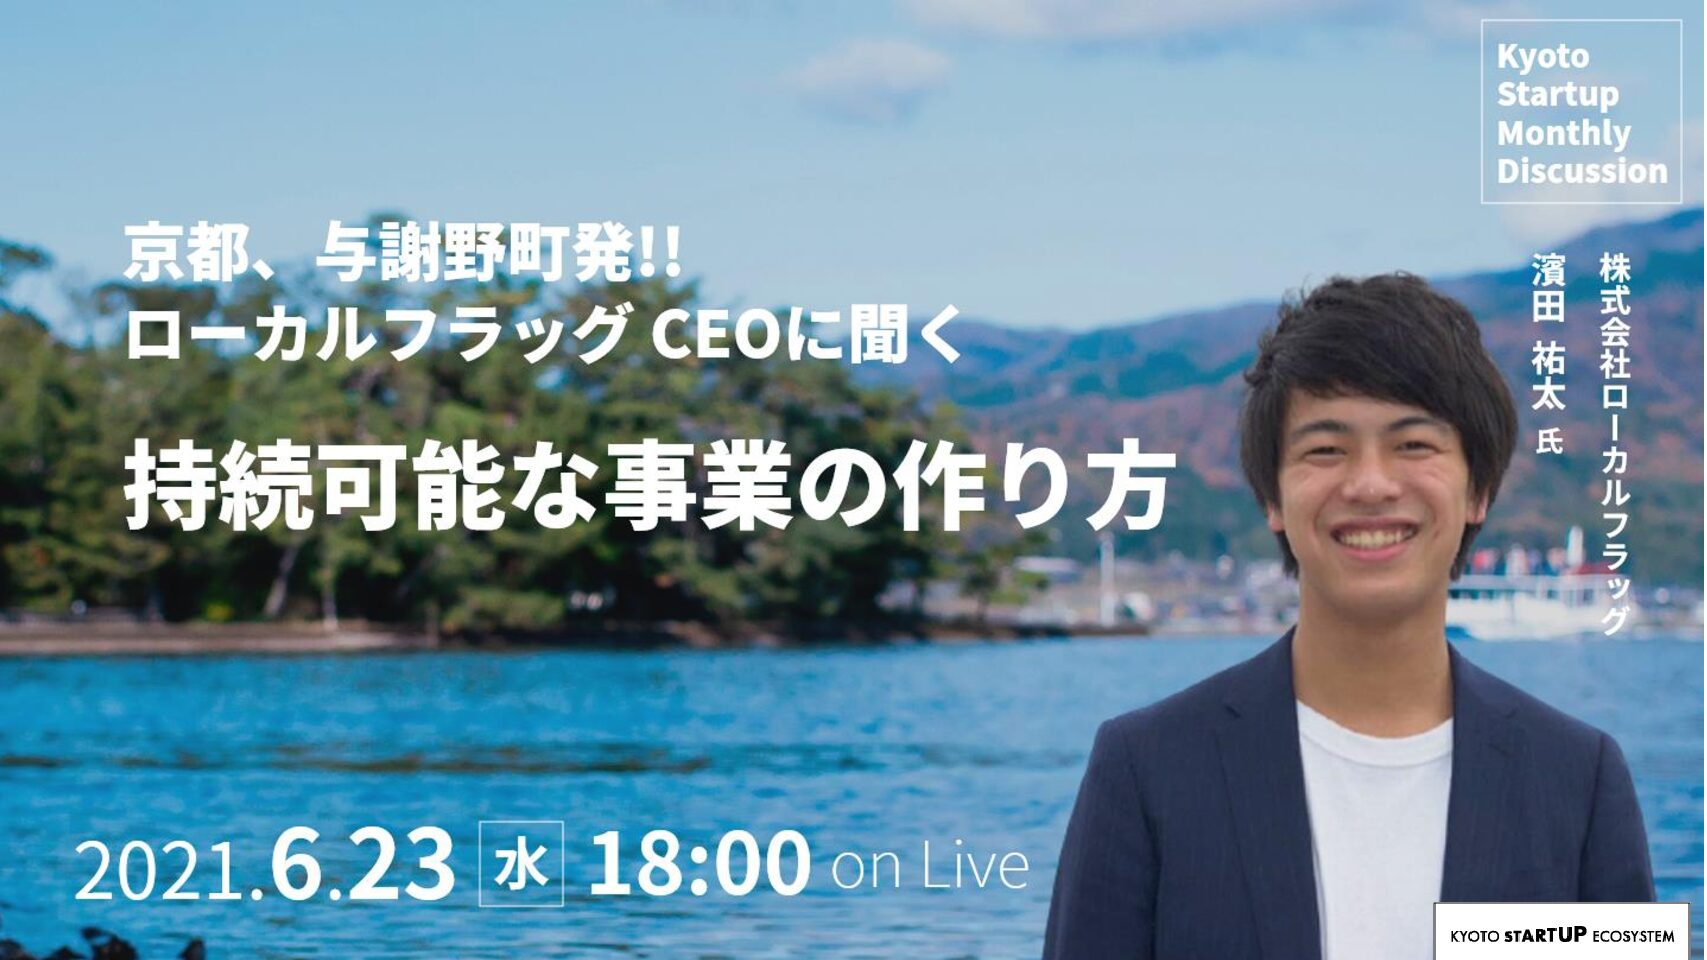 Kyoto Startup Monthly Discussion #01レポート(2021/6/23開催)